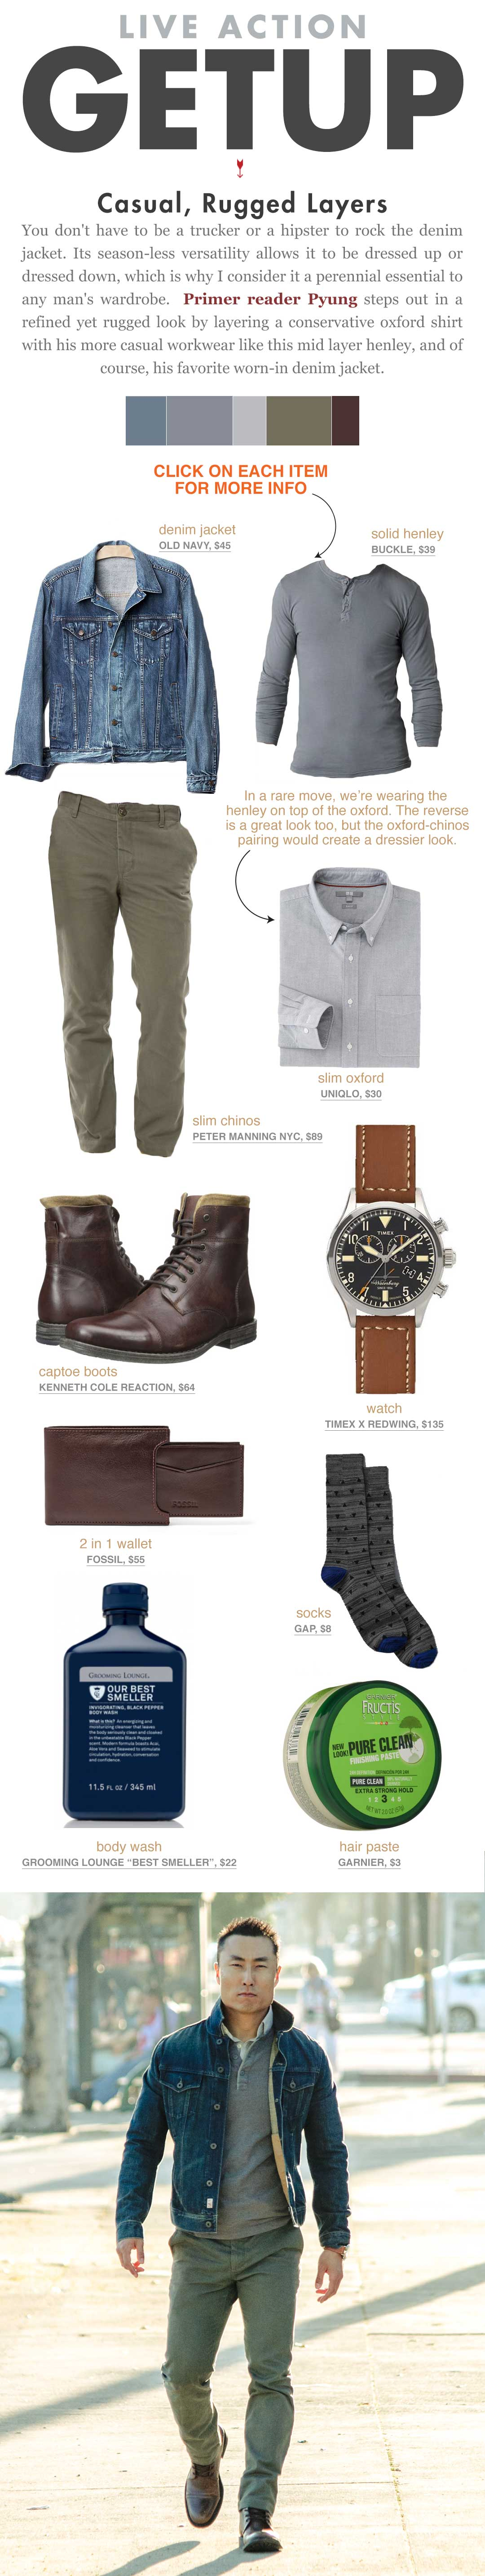 Casual Rugged Layers Getup - Denim jacket, henley, button up shirt, olive chinos and boots